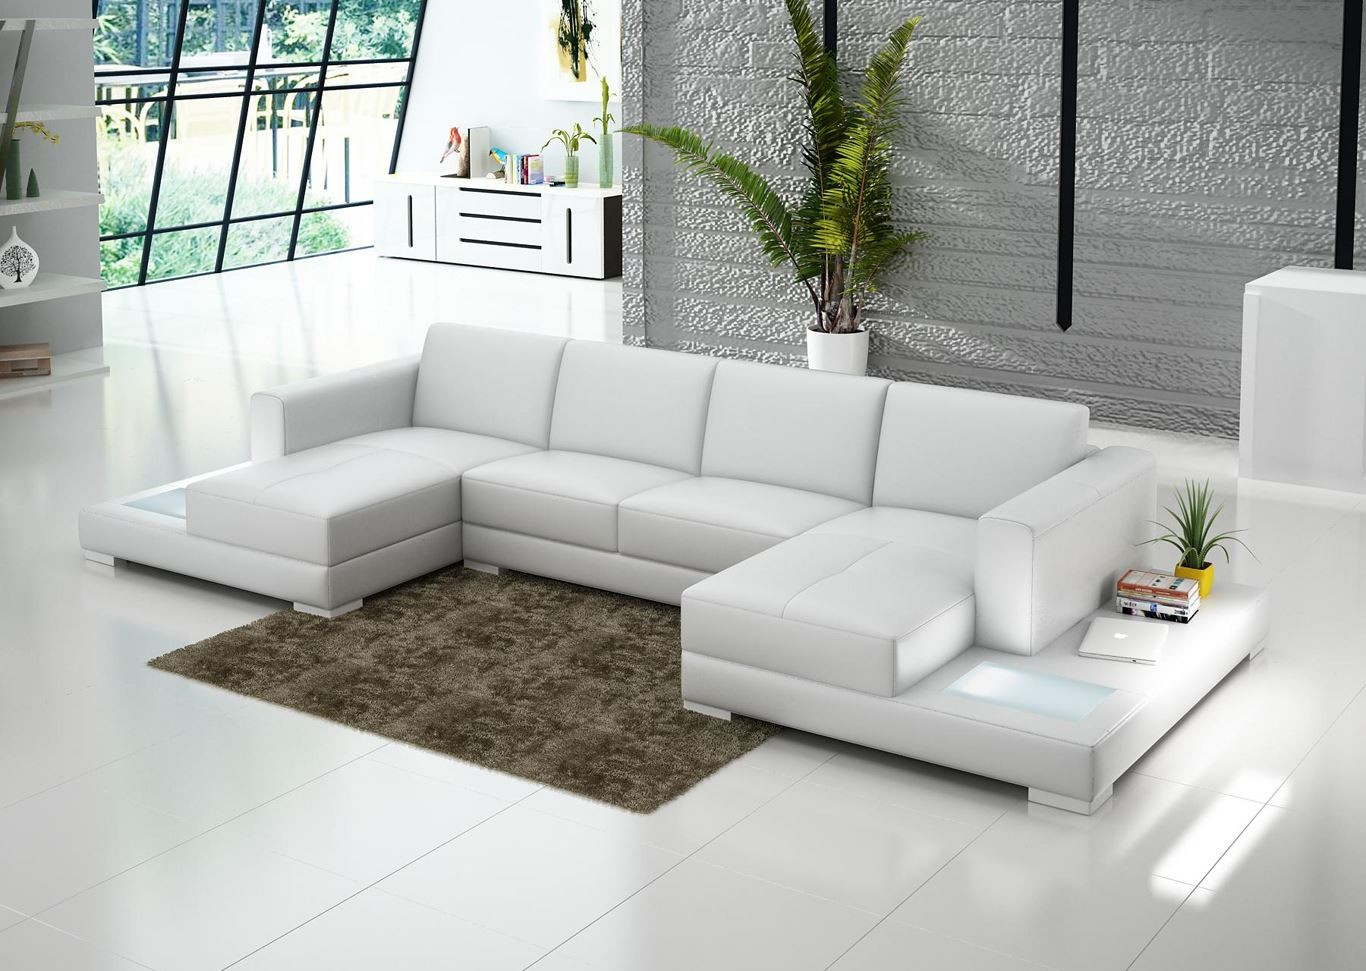 Double Chaise Sectional Double Chaise Sectional For Complete And Perfect Welcoming